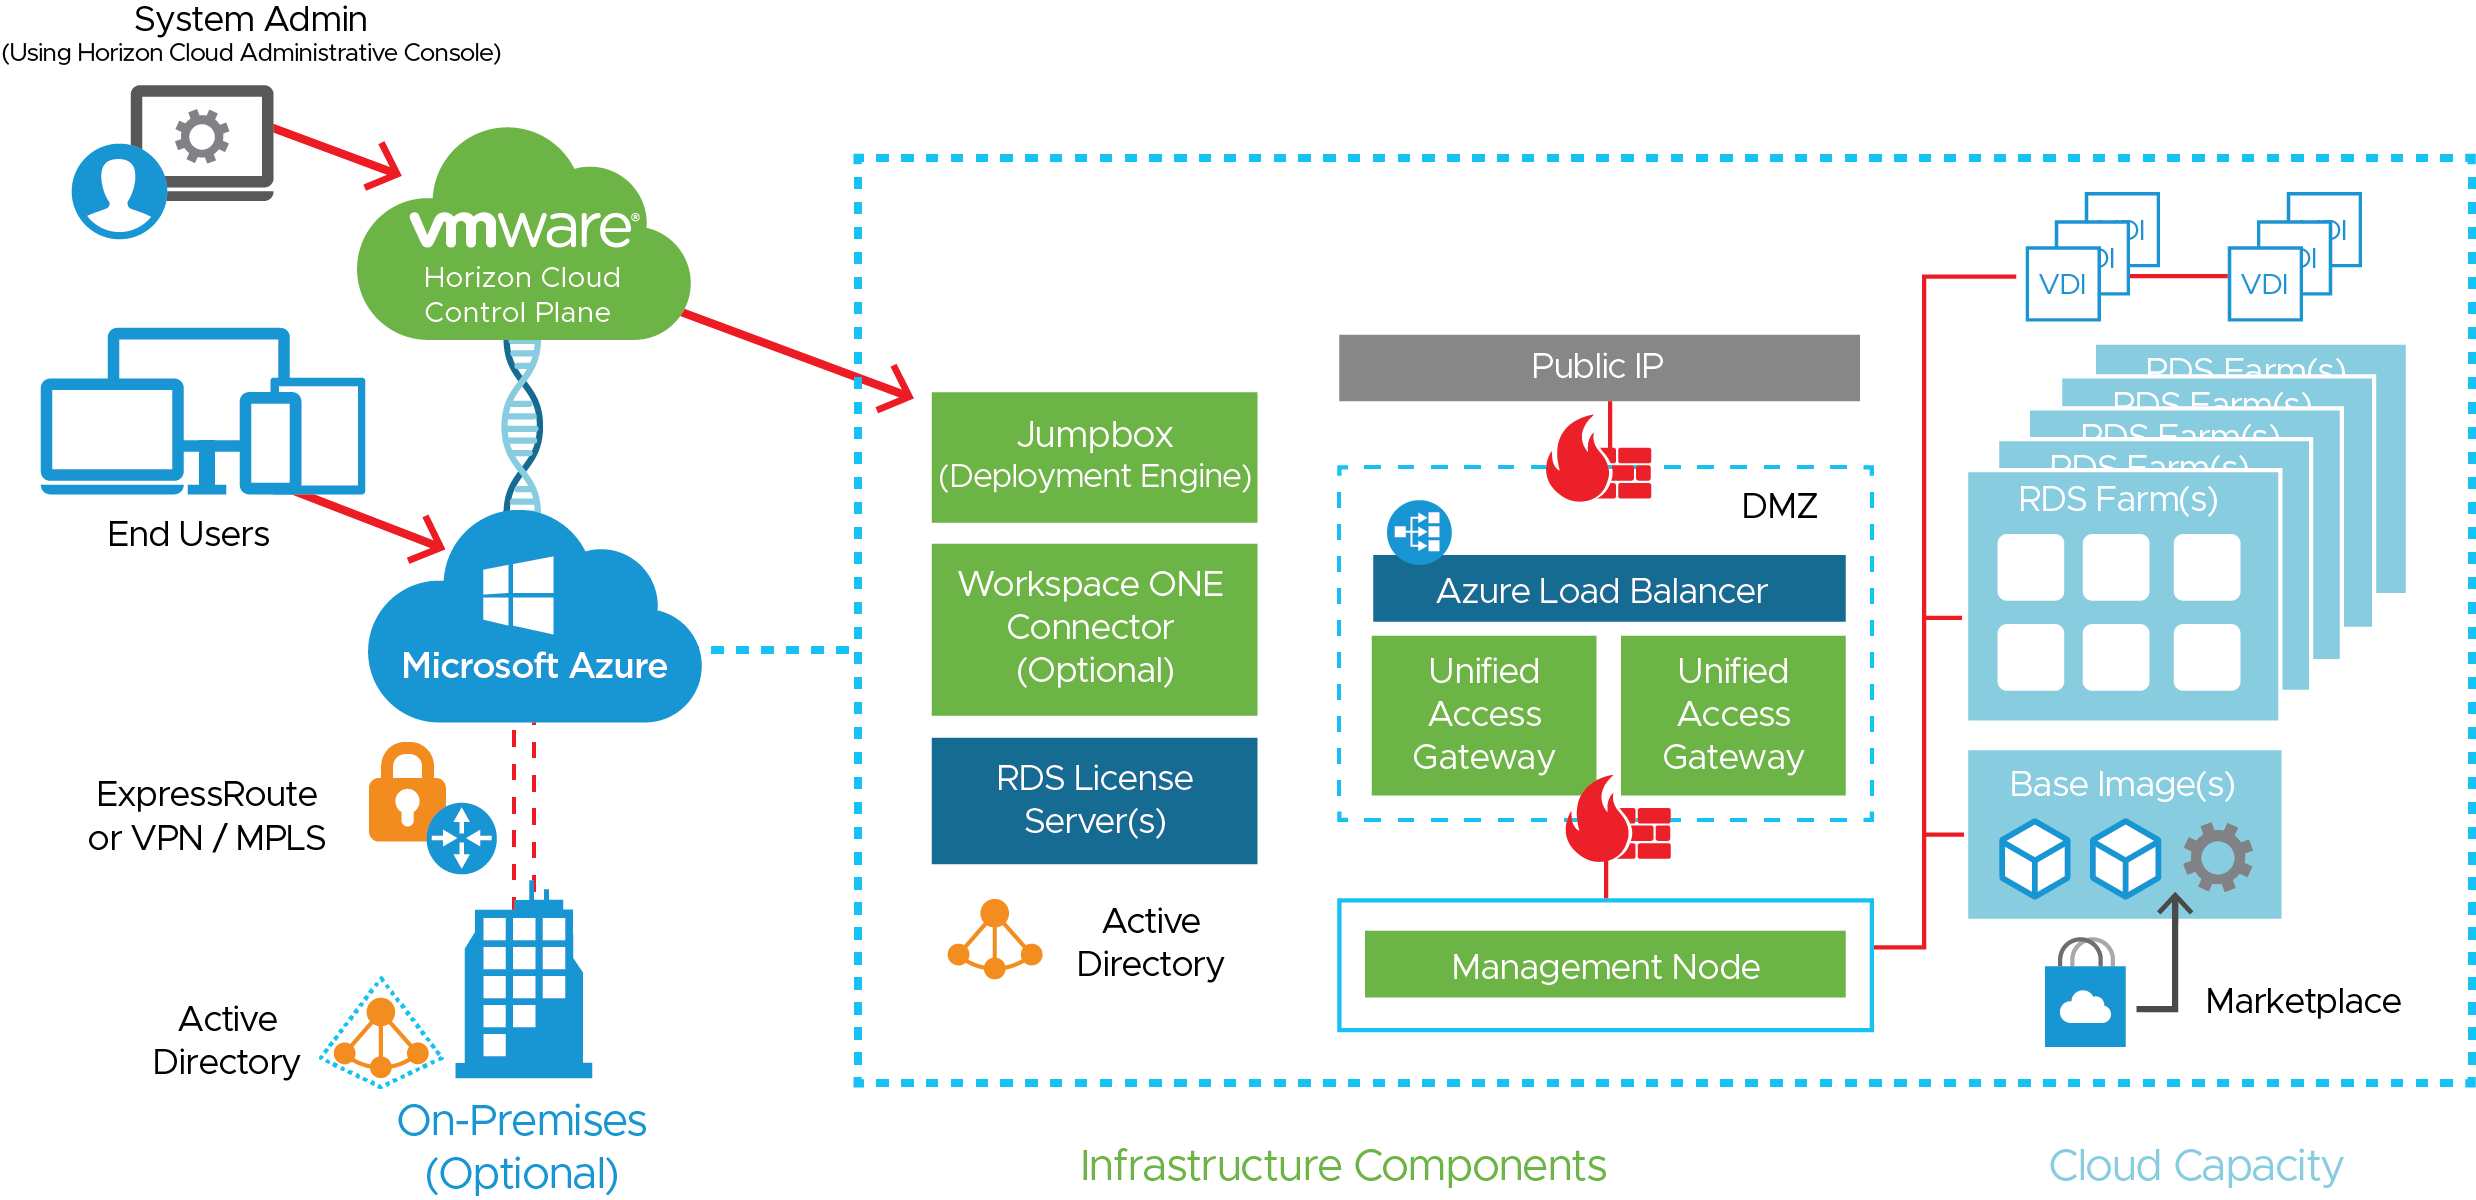 Horizon Cloud Service on Microsoft Azure Logical Architecture